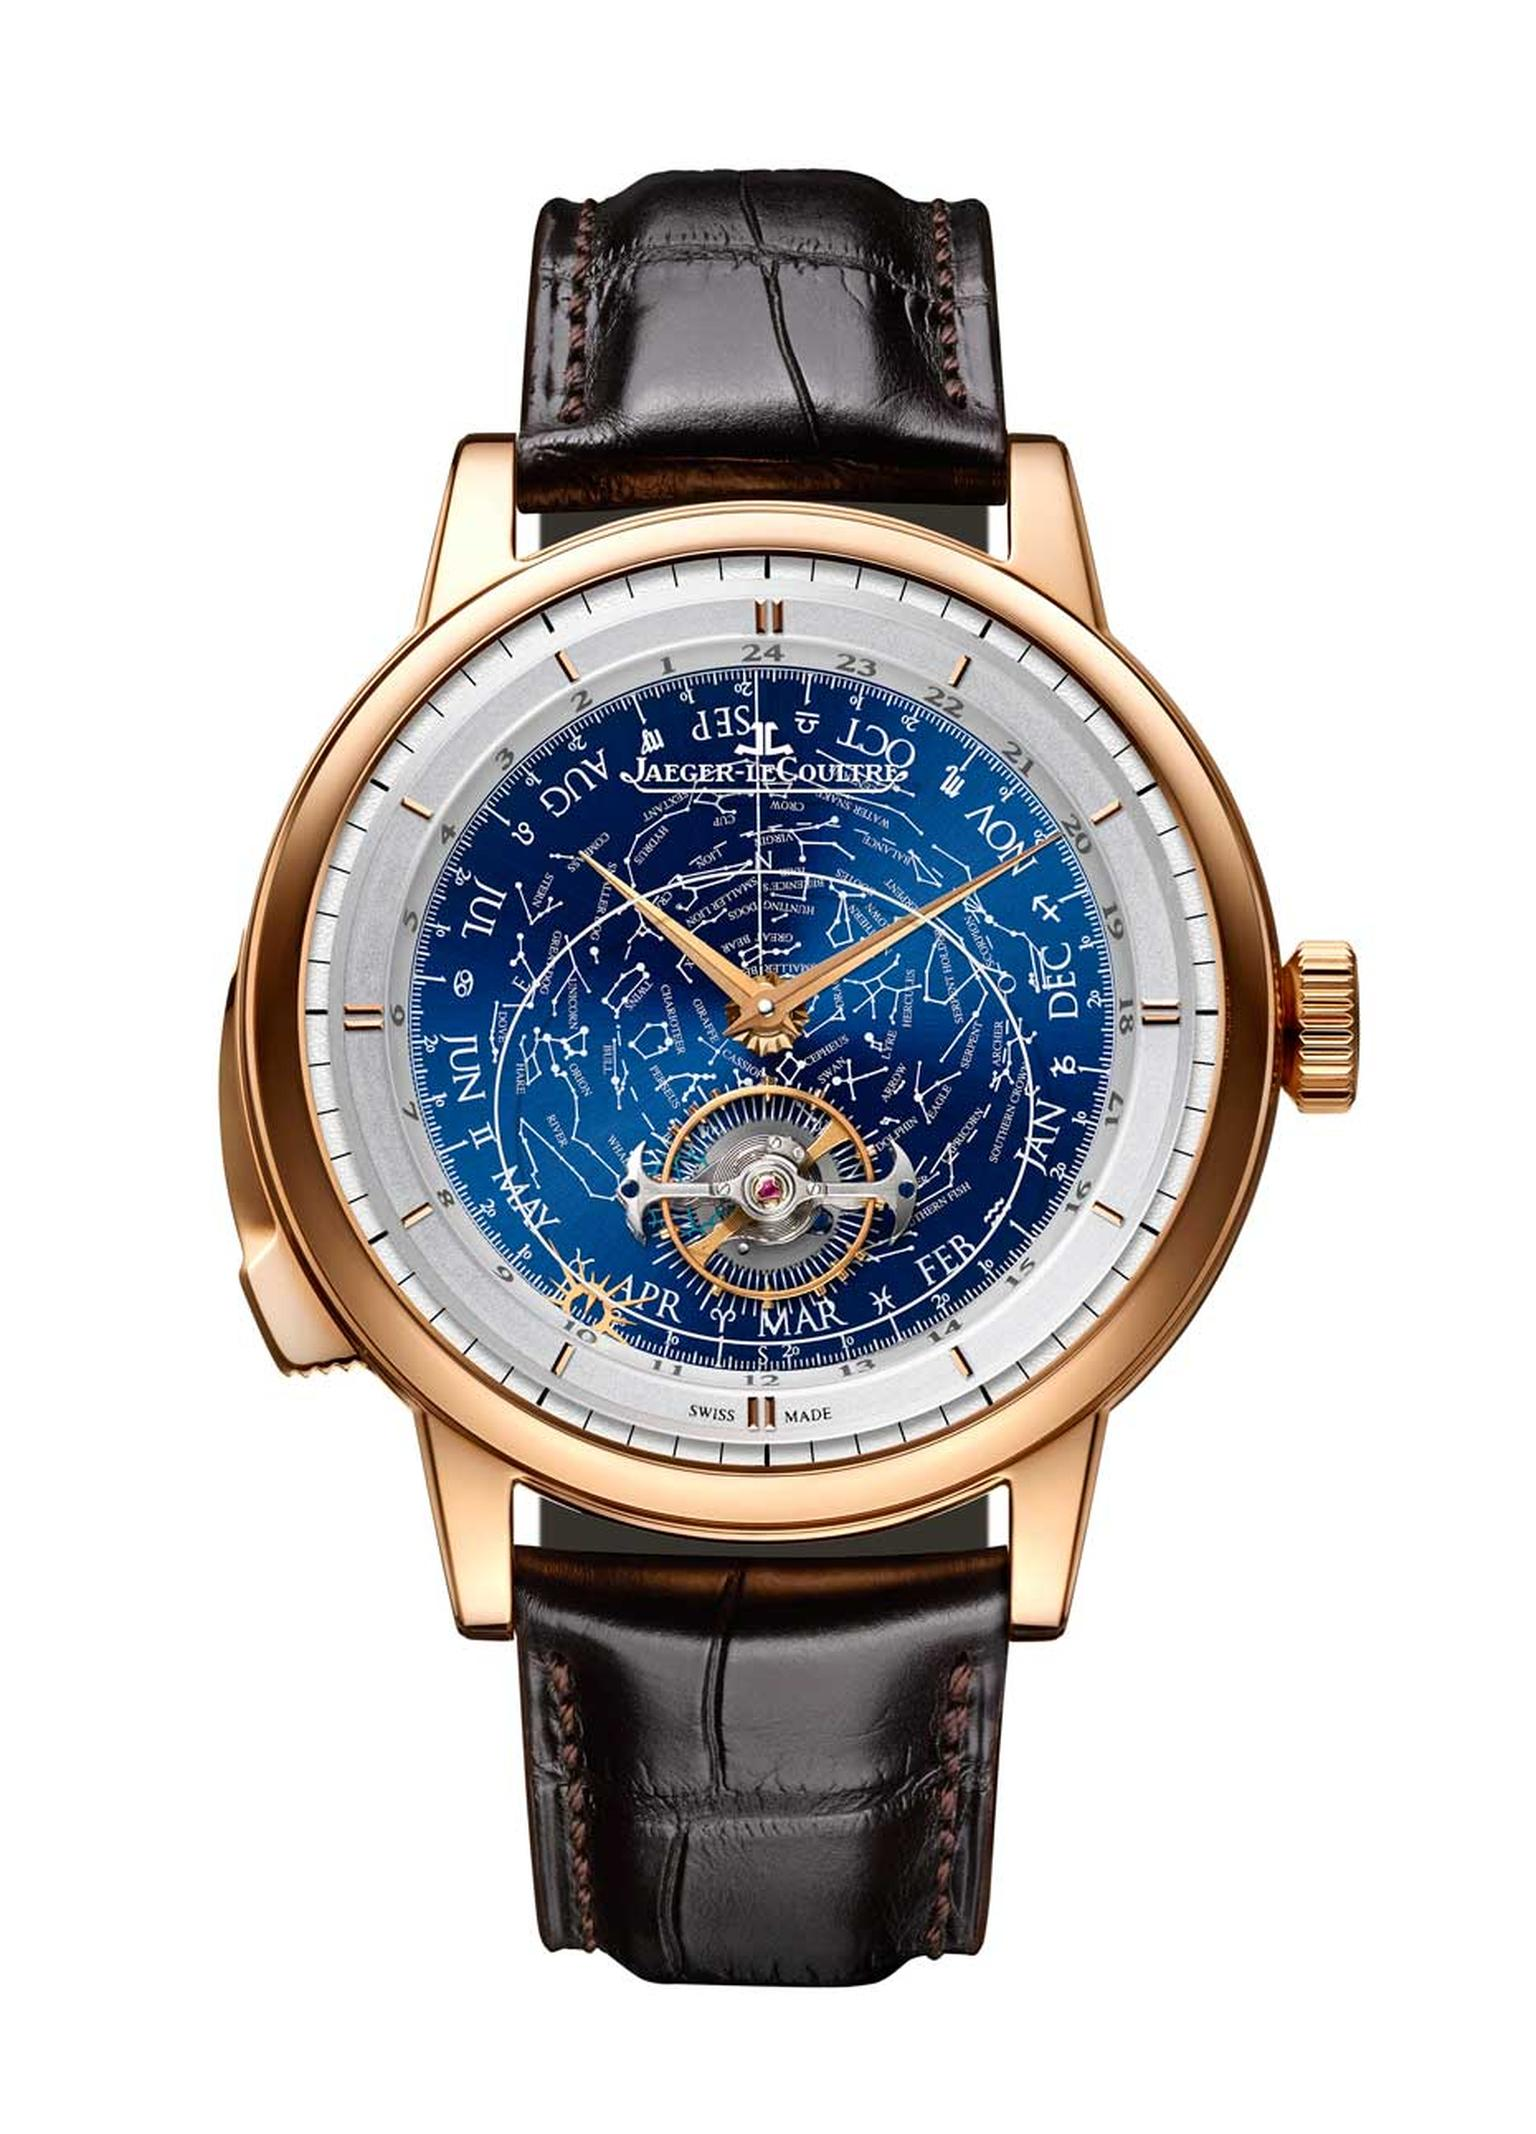 Jaeger-LeCoultre Master Grande Tradition Grande Complication watch boasts three complications: a flying tourbillon orbiting the dial in sidereal time, a calendar with day, month and Zodiac symbol, and a minute repeater to boot.